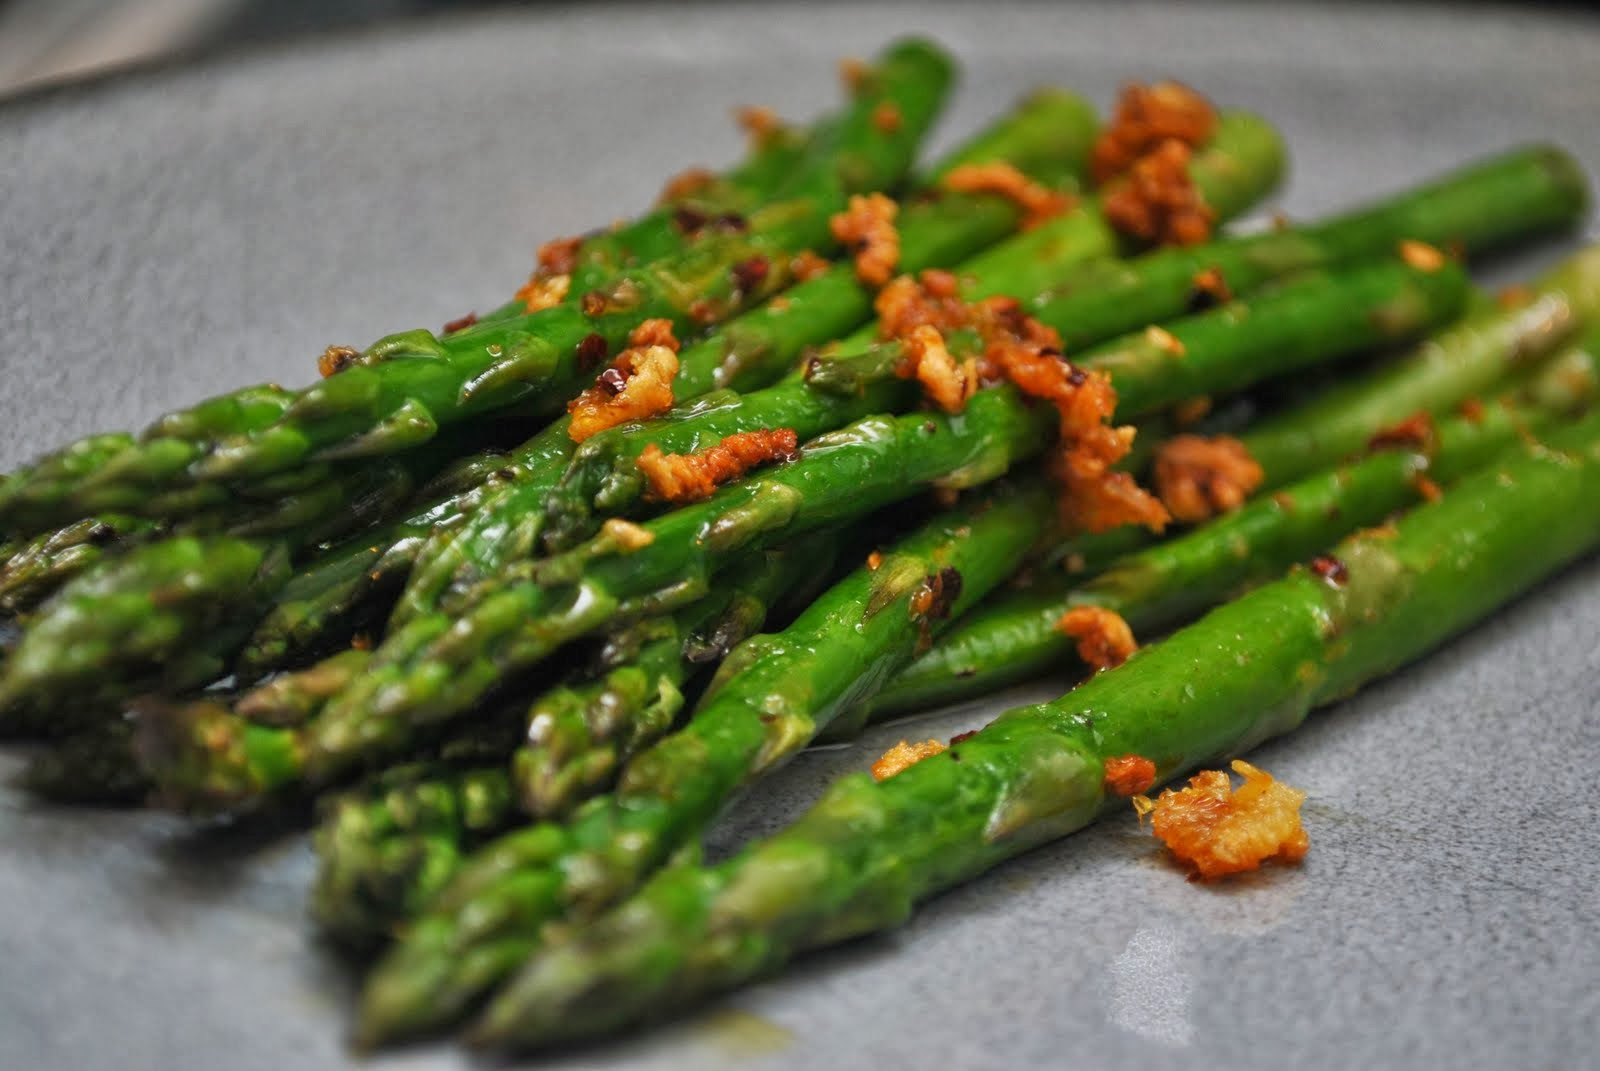 Roasted Asparagus with Garlic Recipe